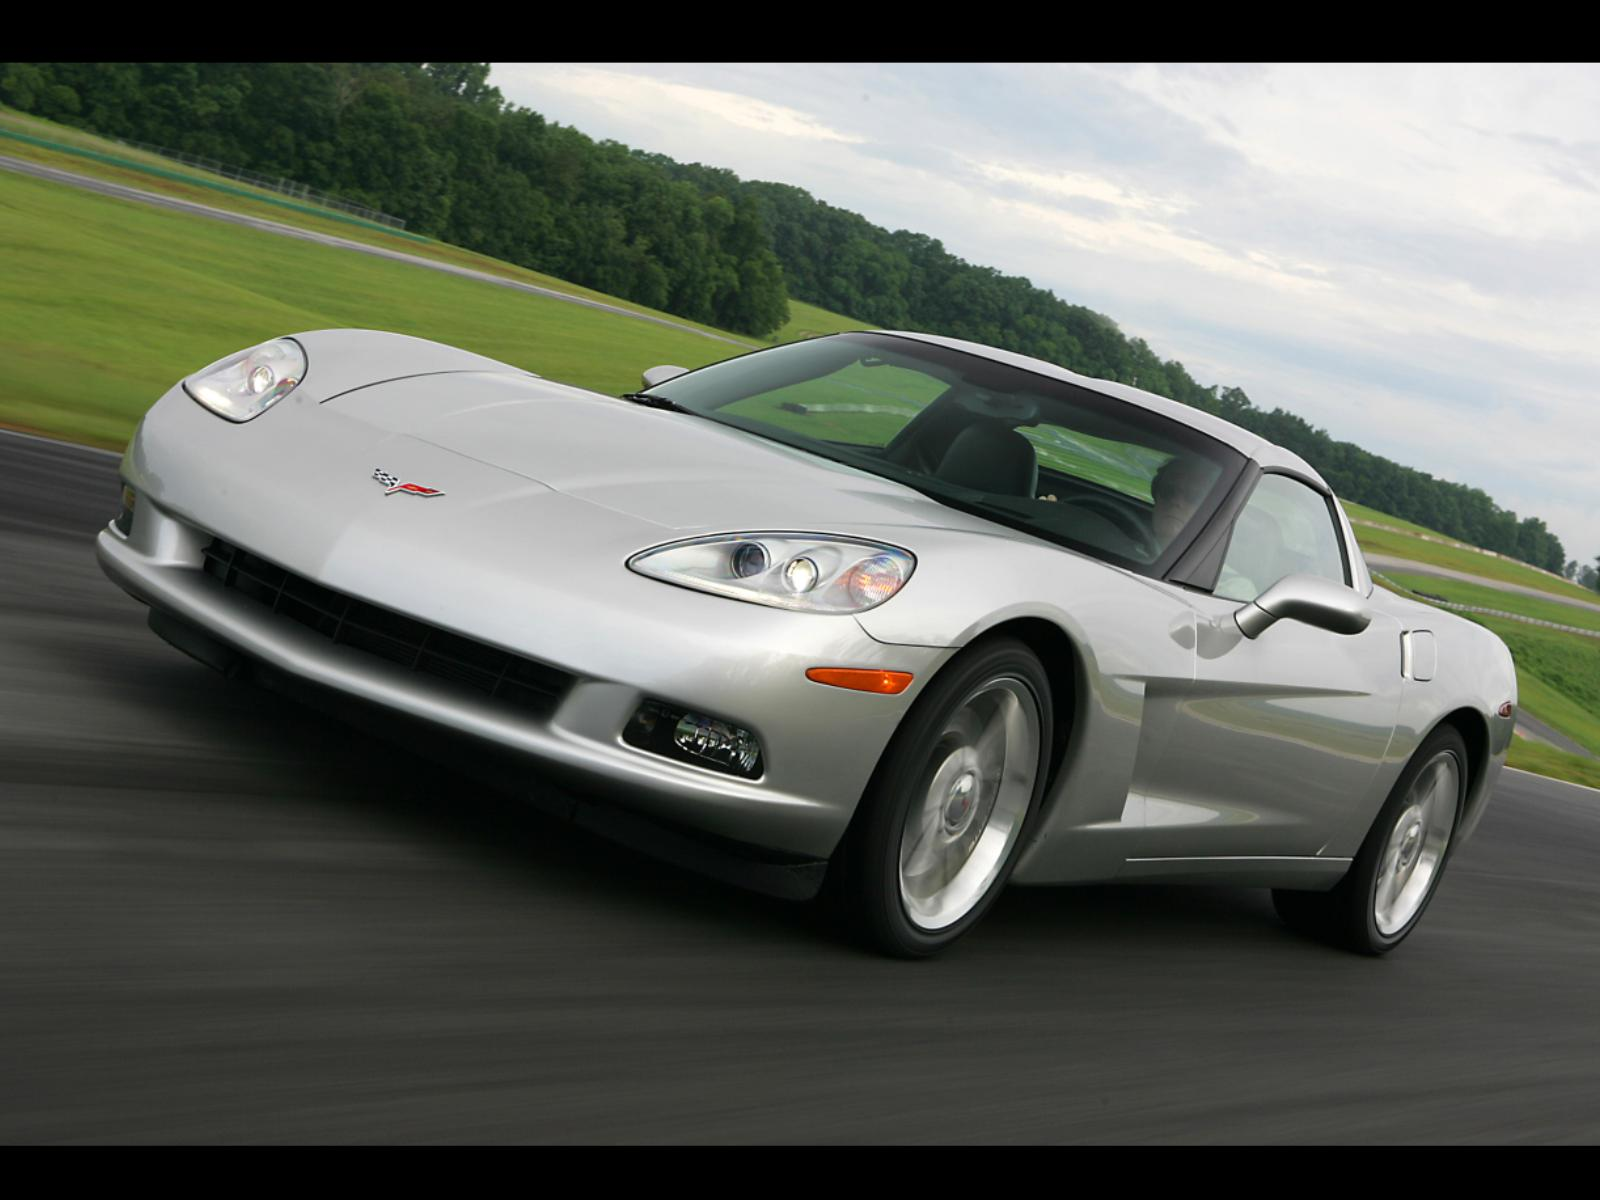 Chevrolet Corvette C6 photo 17657